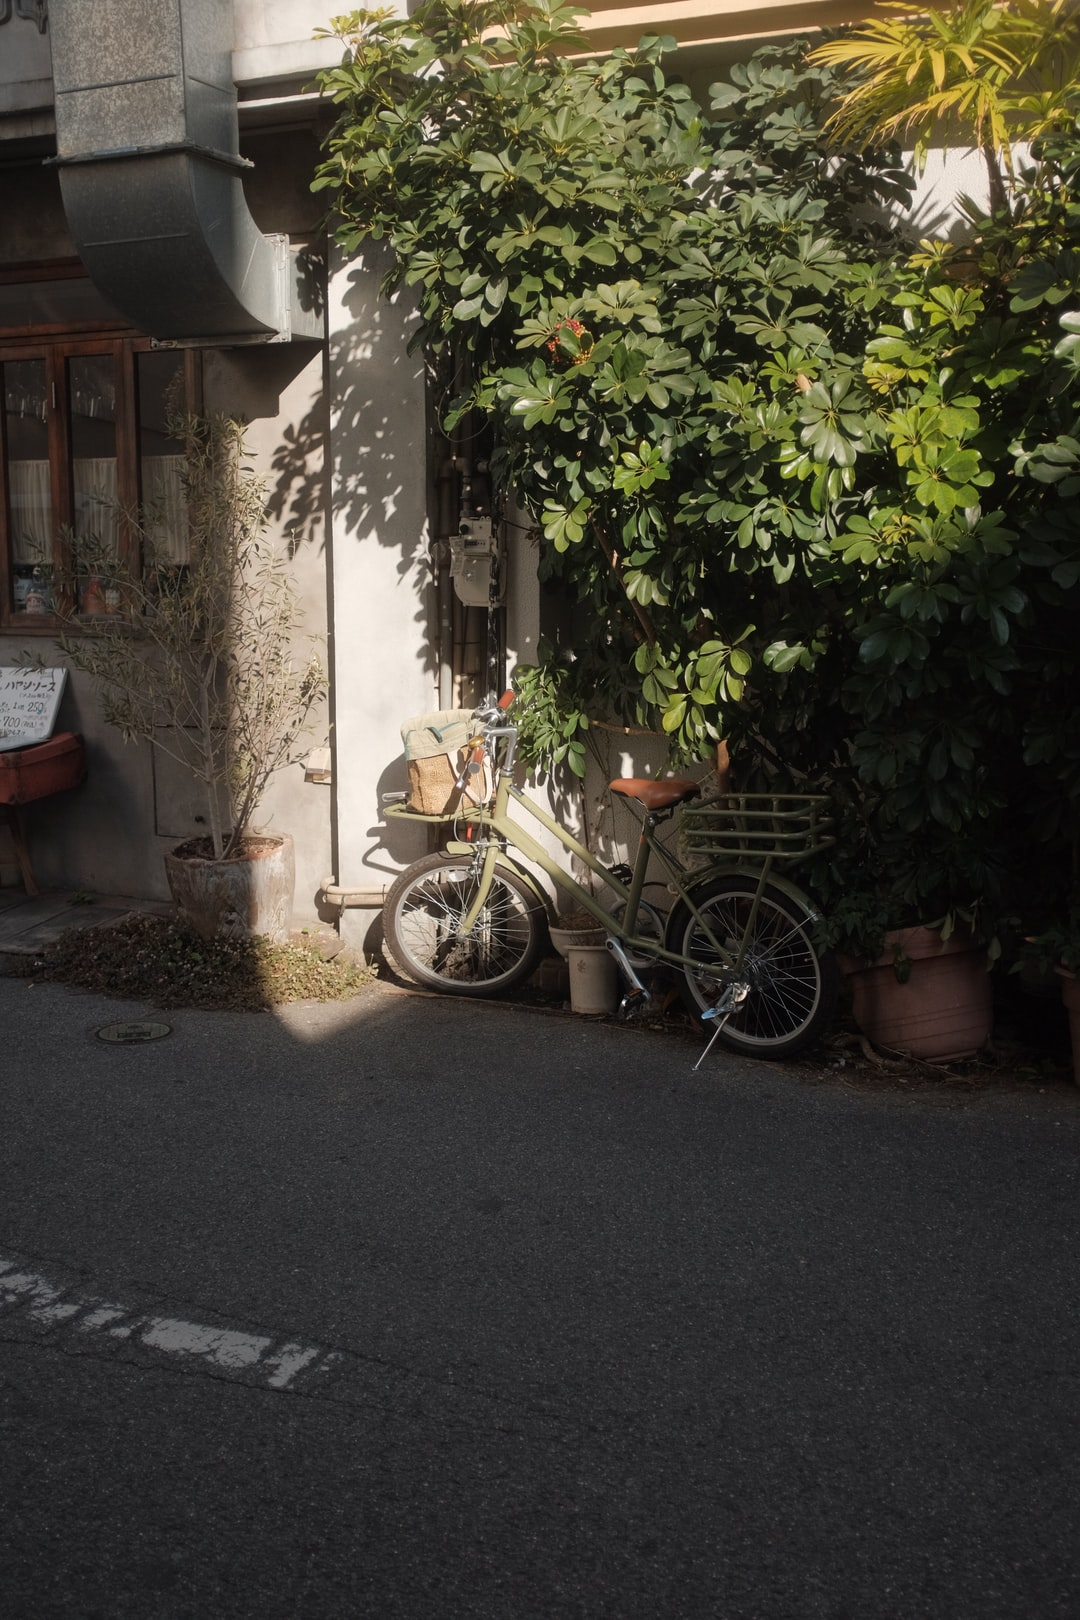 brown and black motorcycle parked beside green plants during daytime